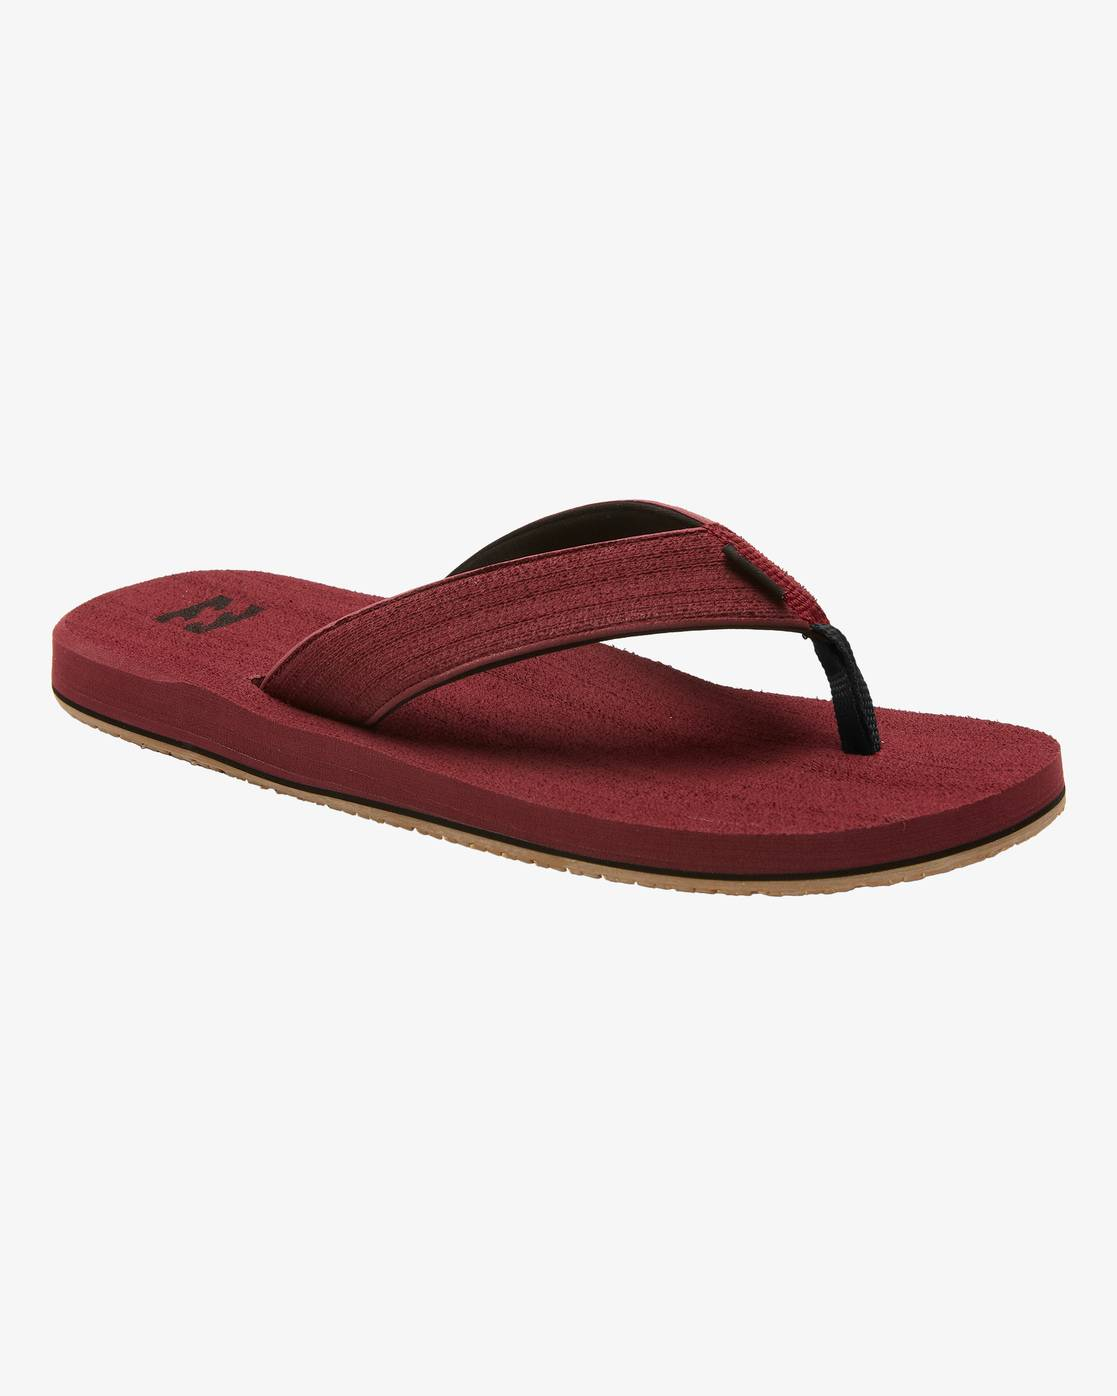 Billabong ALL DAY IMPACT BRUSHED  - Red - Size: 8